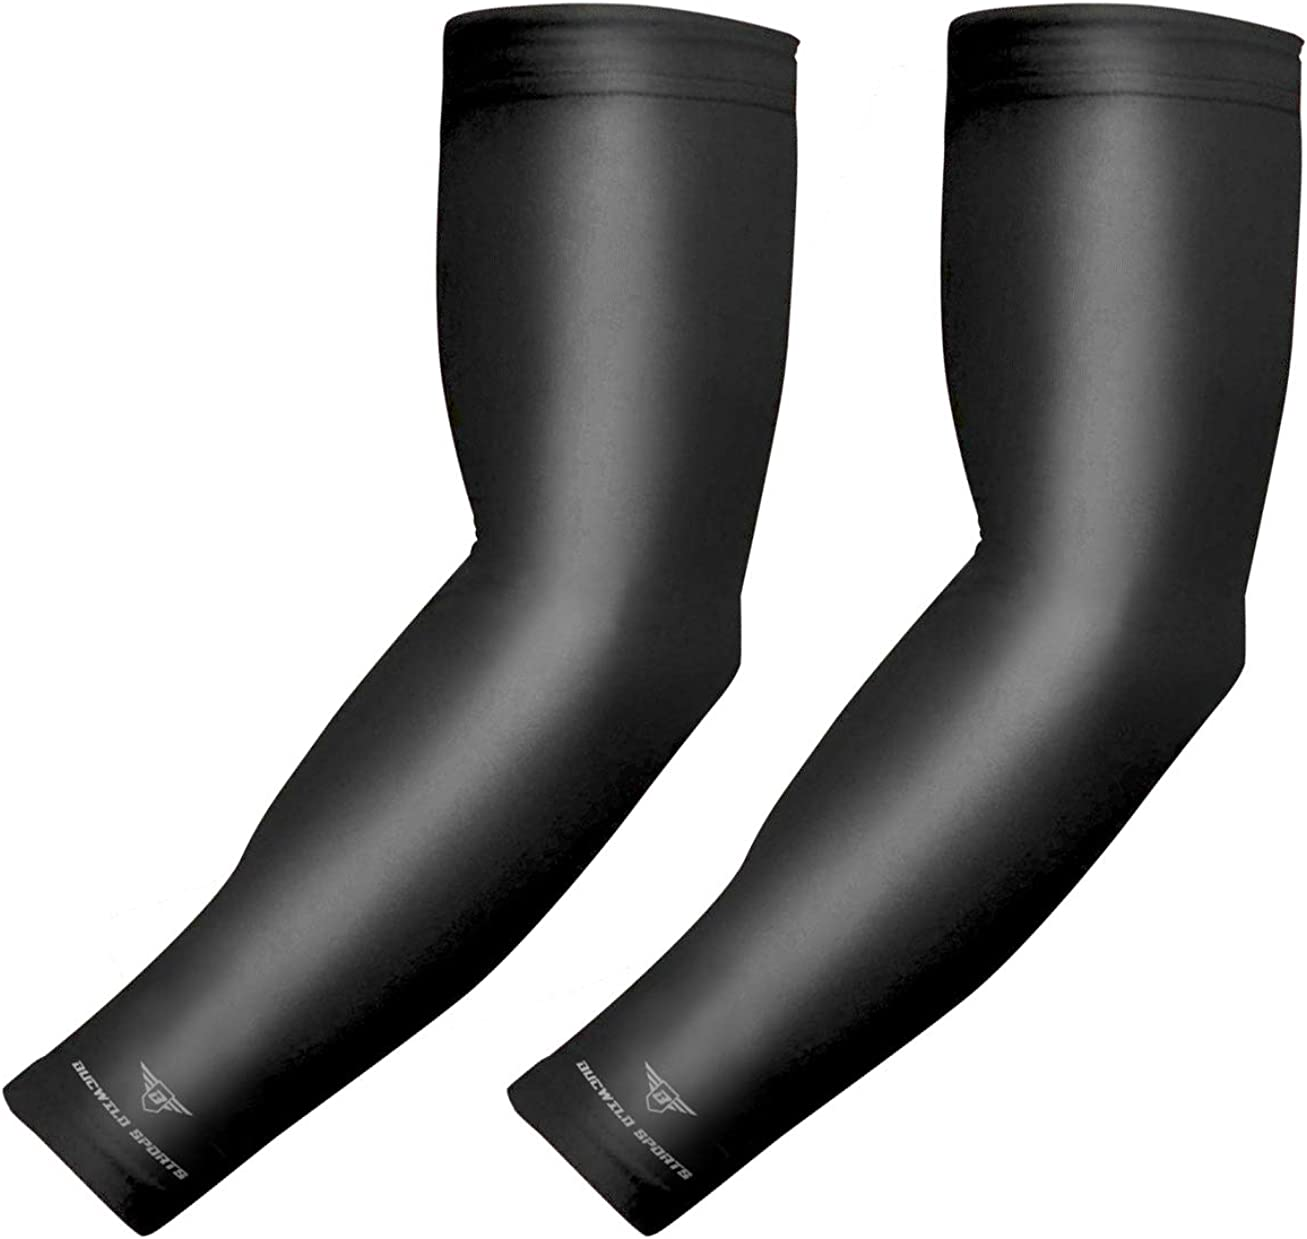 COOLOMG Compression Arm Sleeves Sports Baseball Basketball Football Cycling Youth /& Adult Sizes 1 Pair